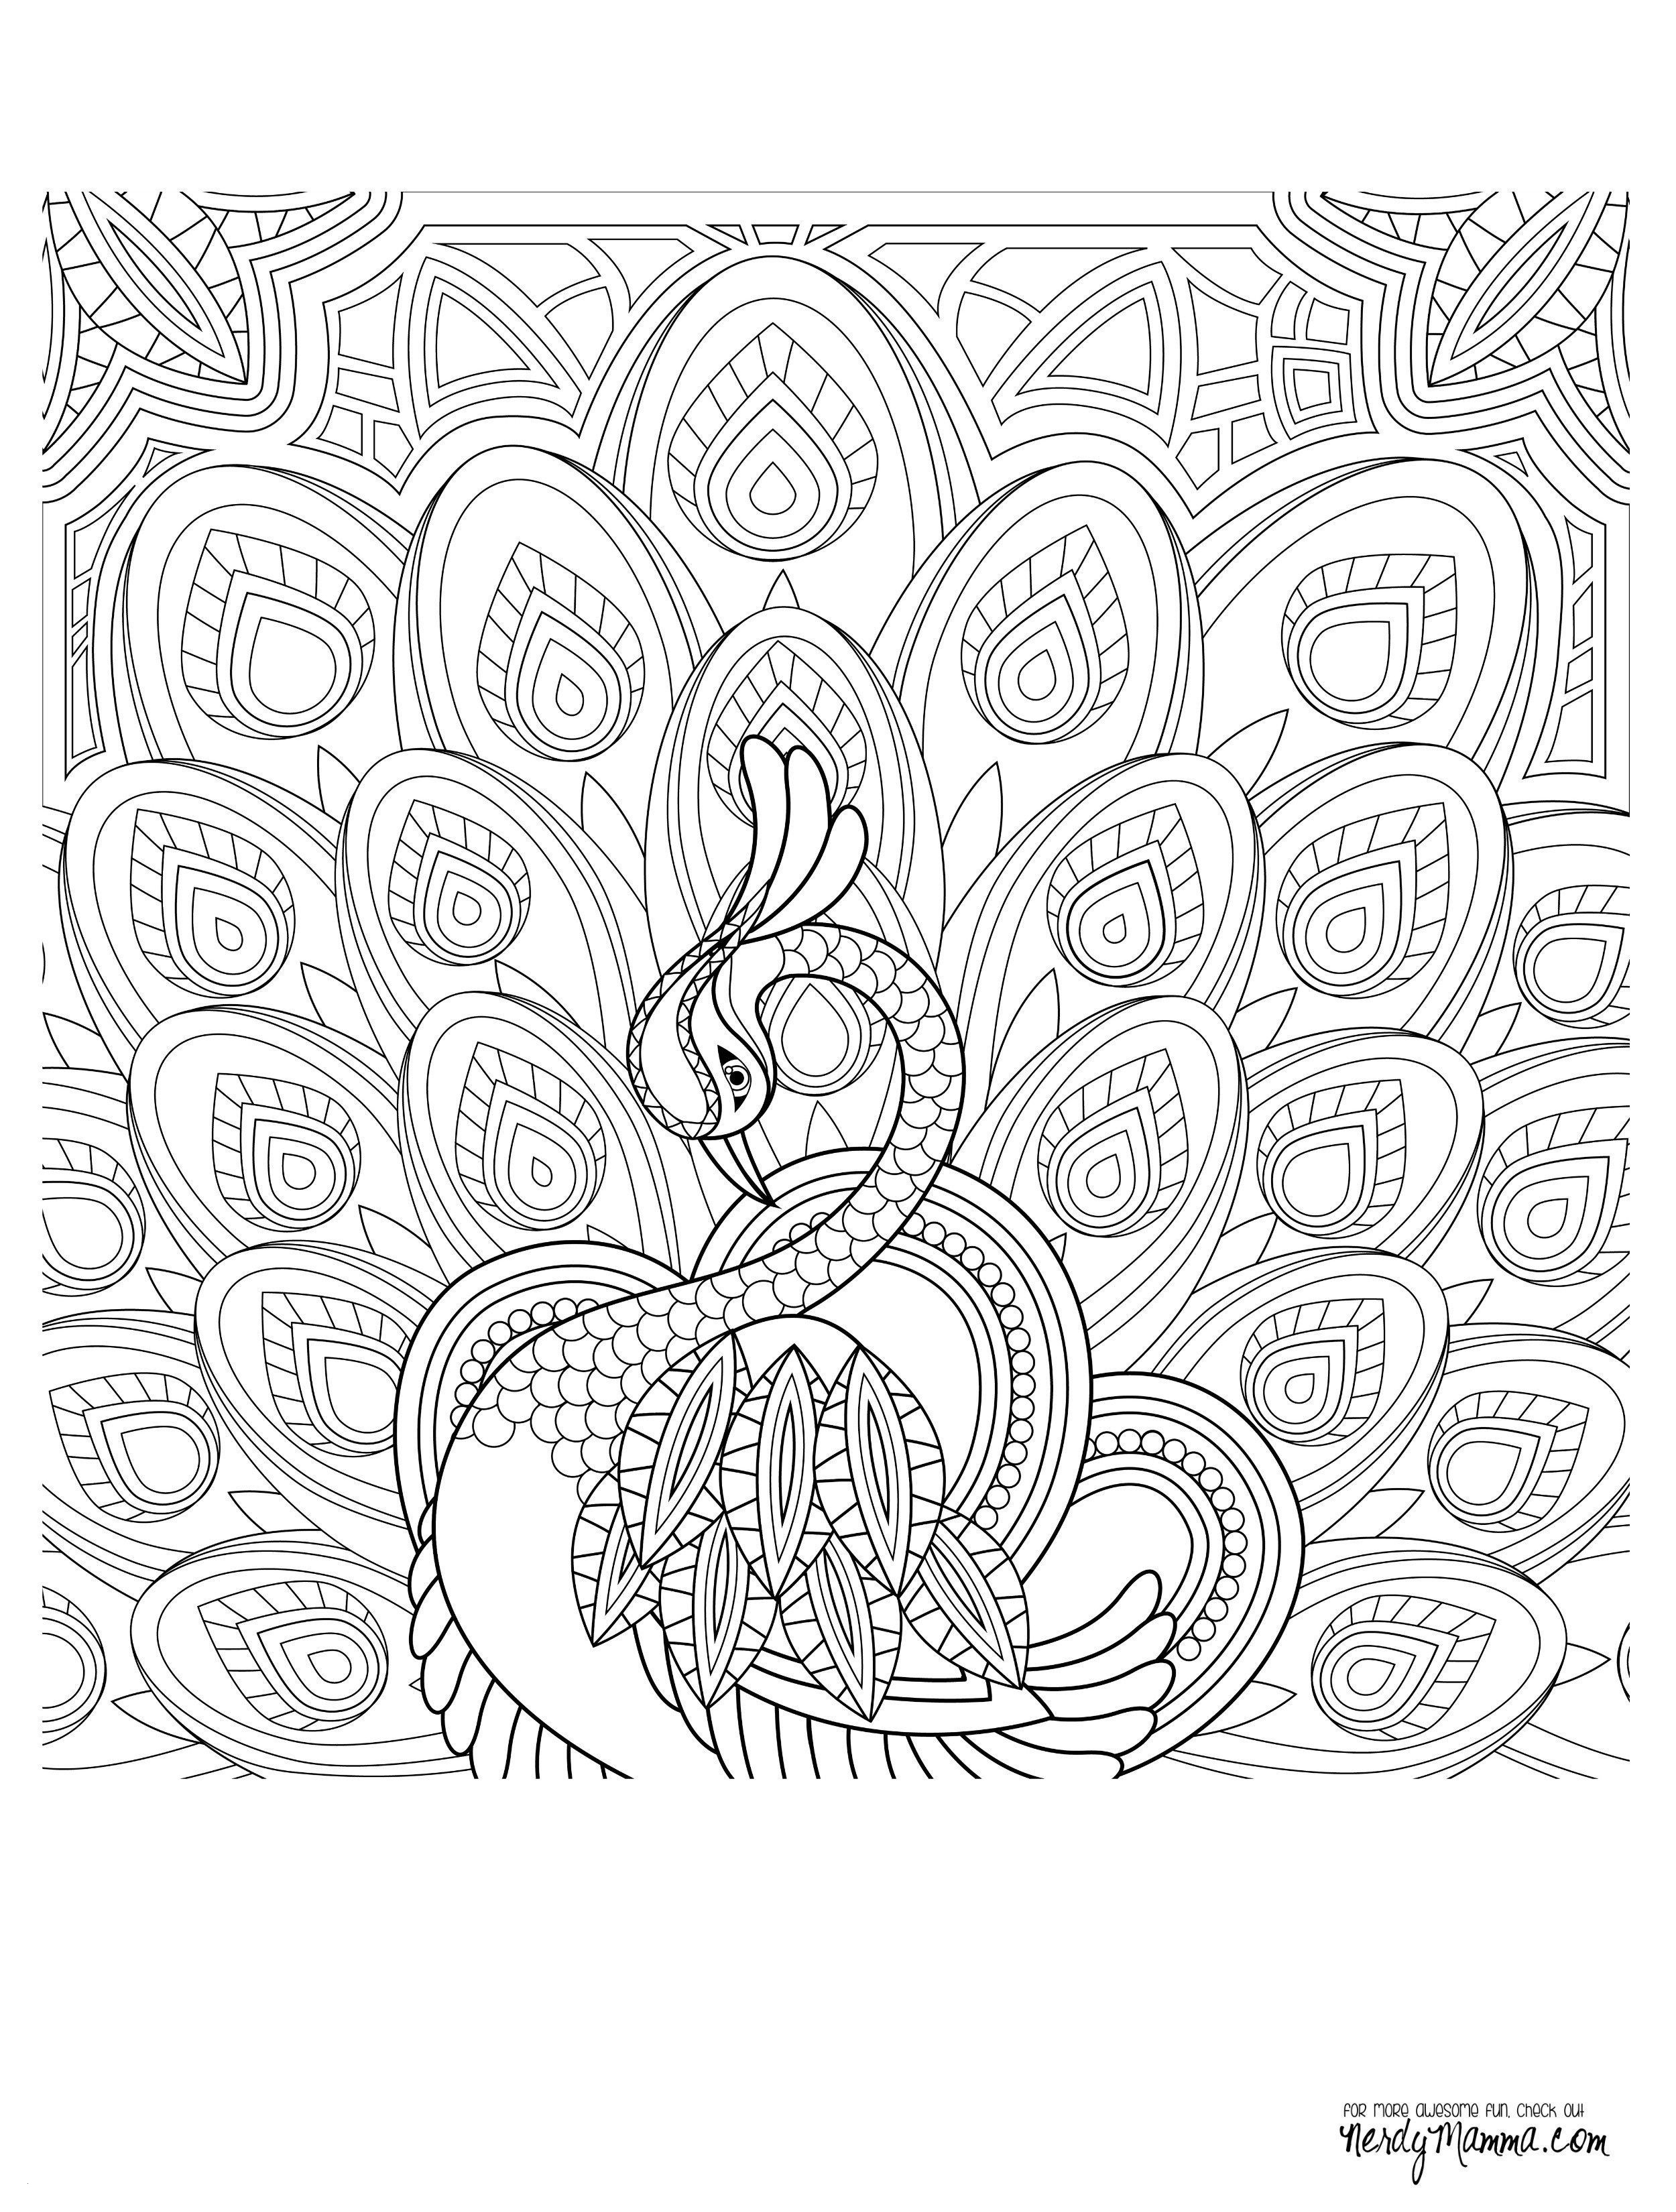 Christmas Coloring Pages For Church With Free Printable Vintage